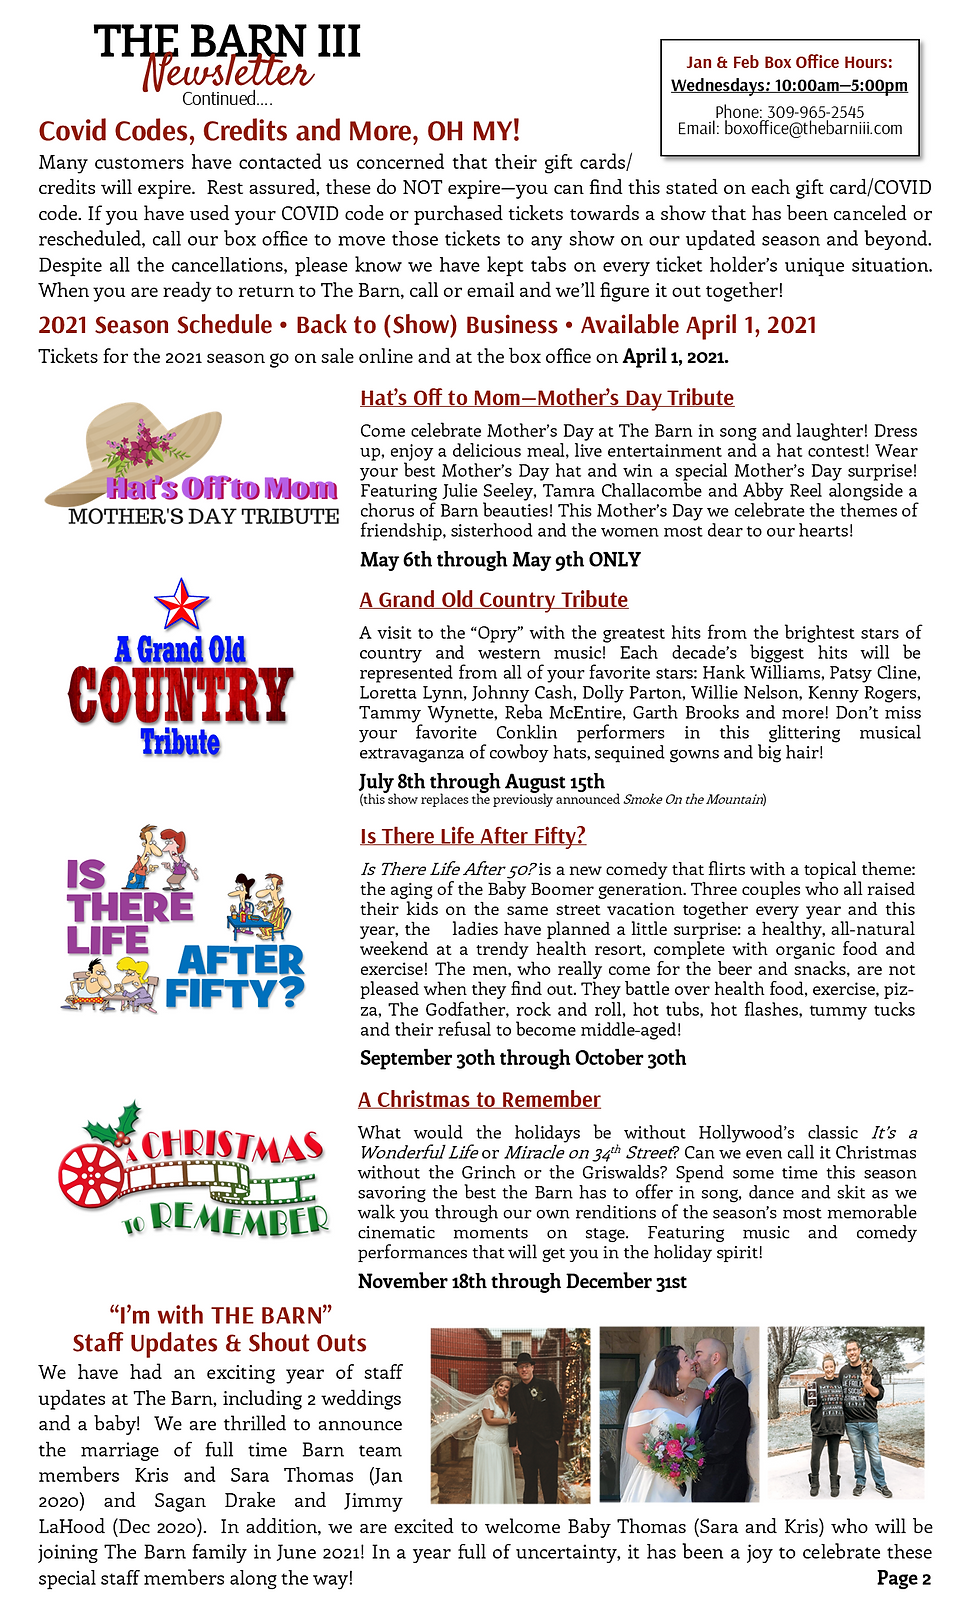 Working Copy - January Newsletter page 2